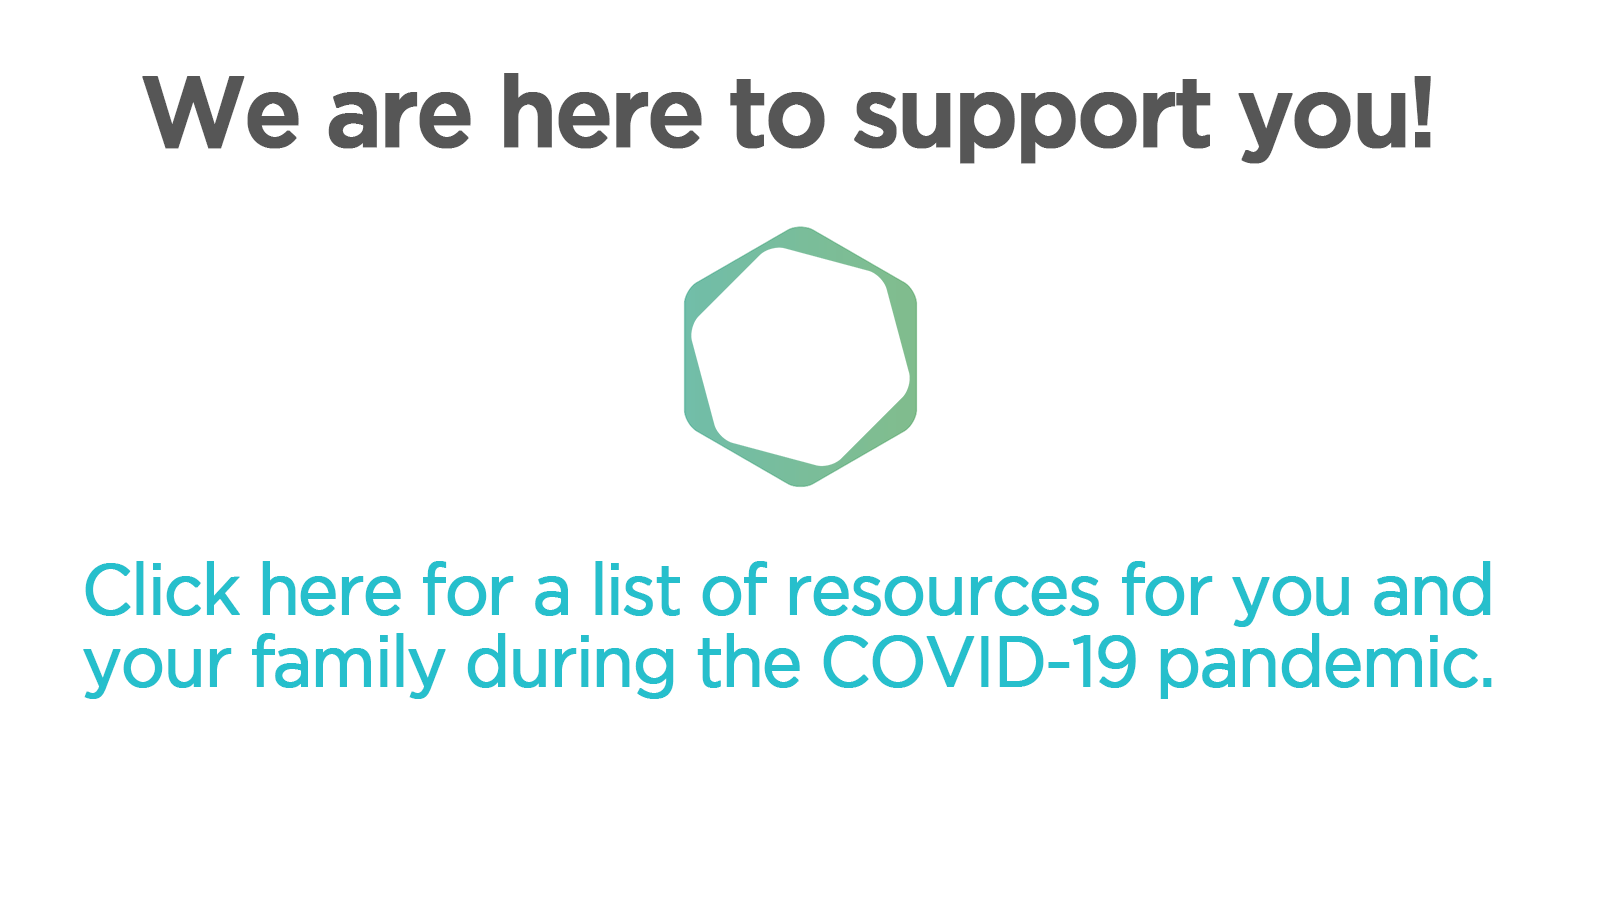 we are here to support you, click here for a list of resources for you and your family during the COVID-19 pandemic